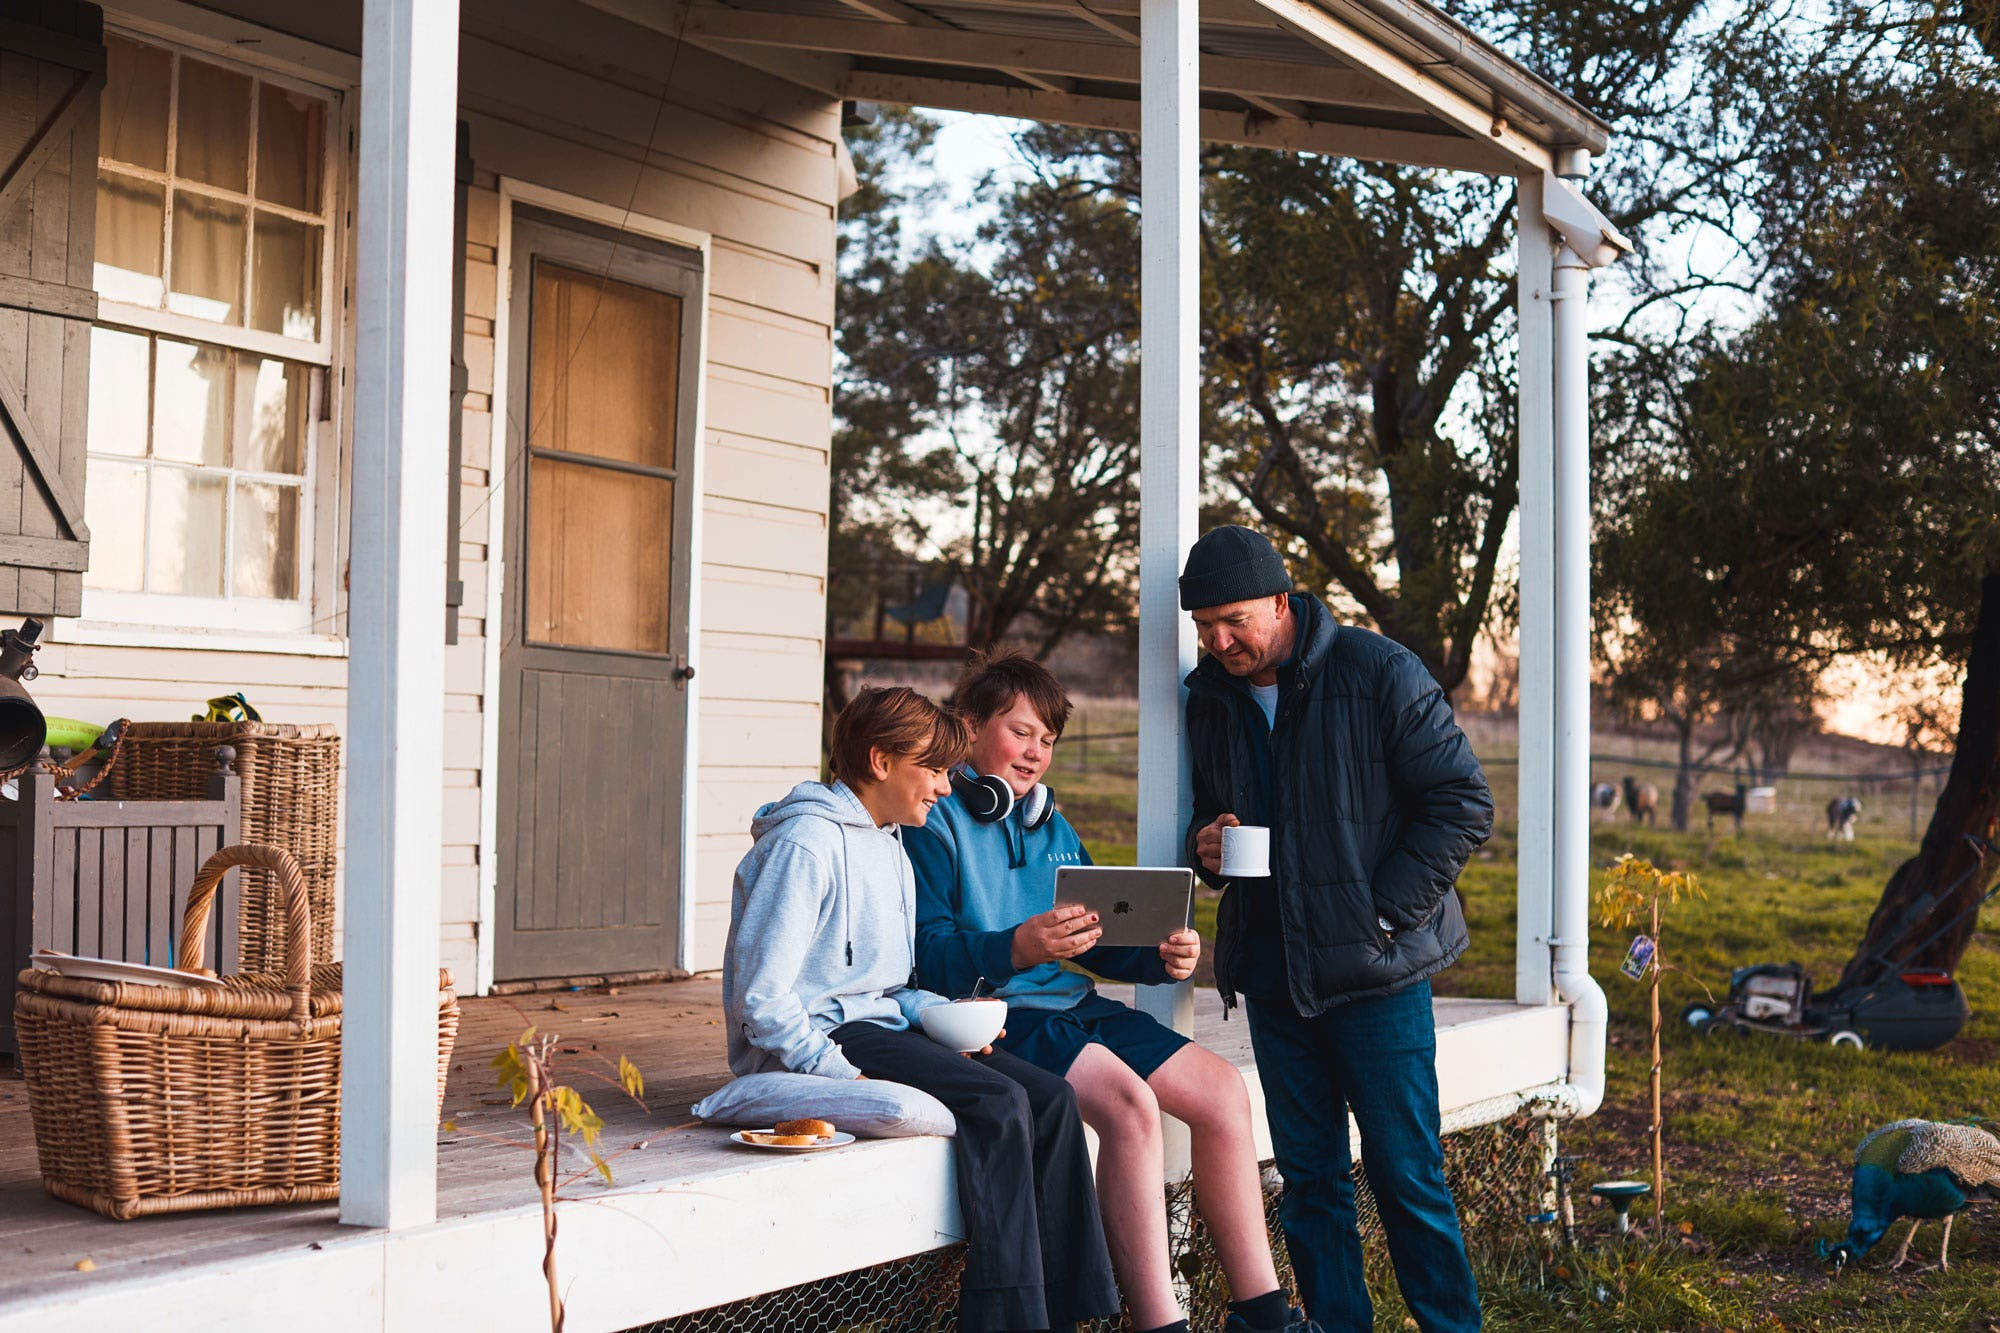 Two boys sitting on a porch in rural Australia